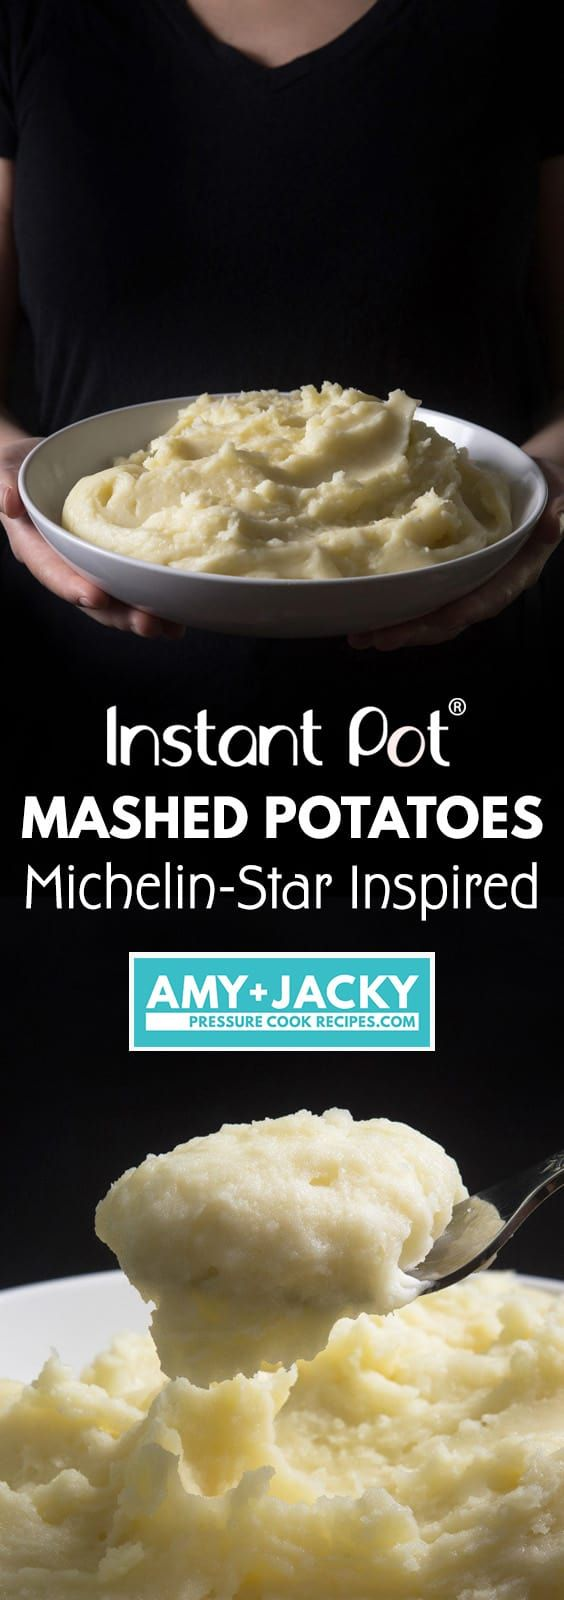 How to make Michelin-Star Inspired Instant Pot Mashed Potatoes Recipe. Super easy homemade classic mashed potatoes with 4 simple ingredients. Creamy smooth, fluffy, buttery rich mashed potatoes takes your tastebuds to heaven.